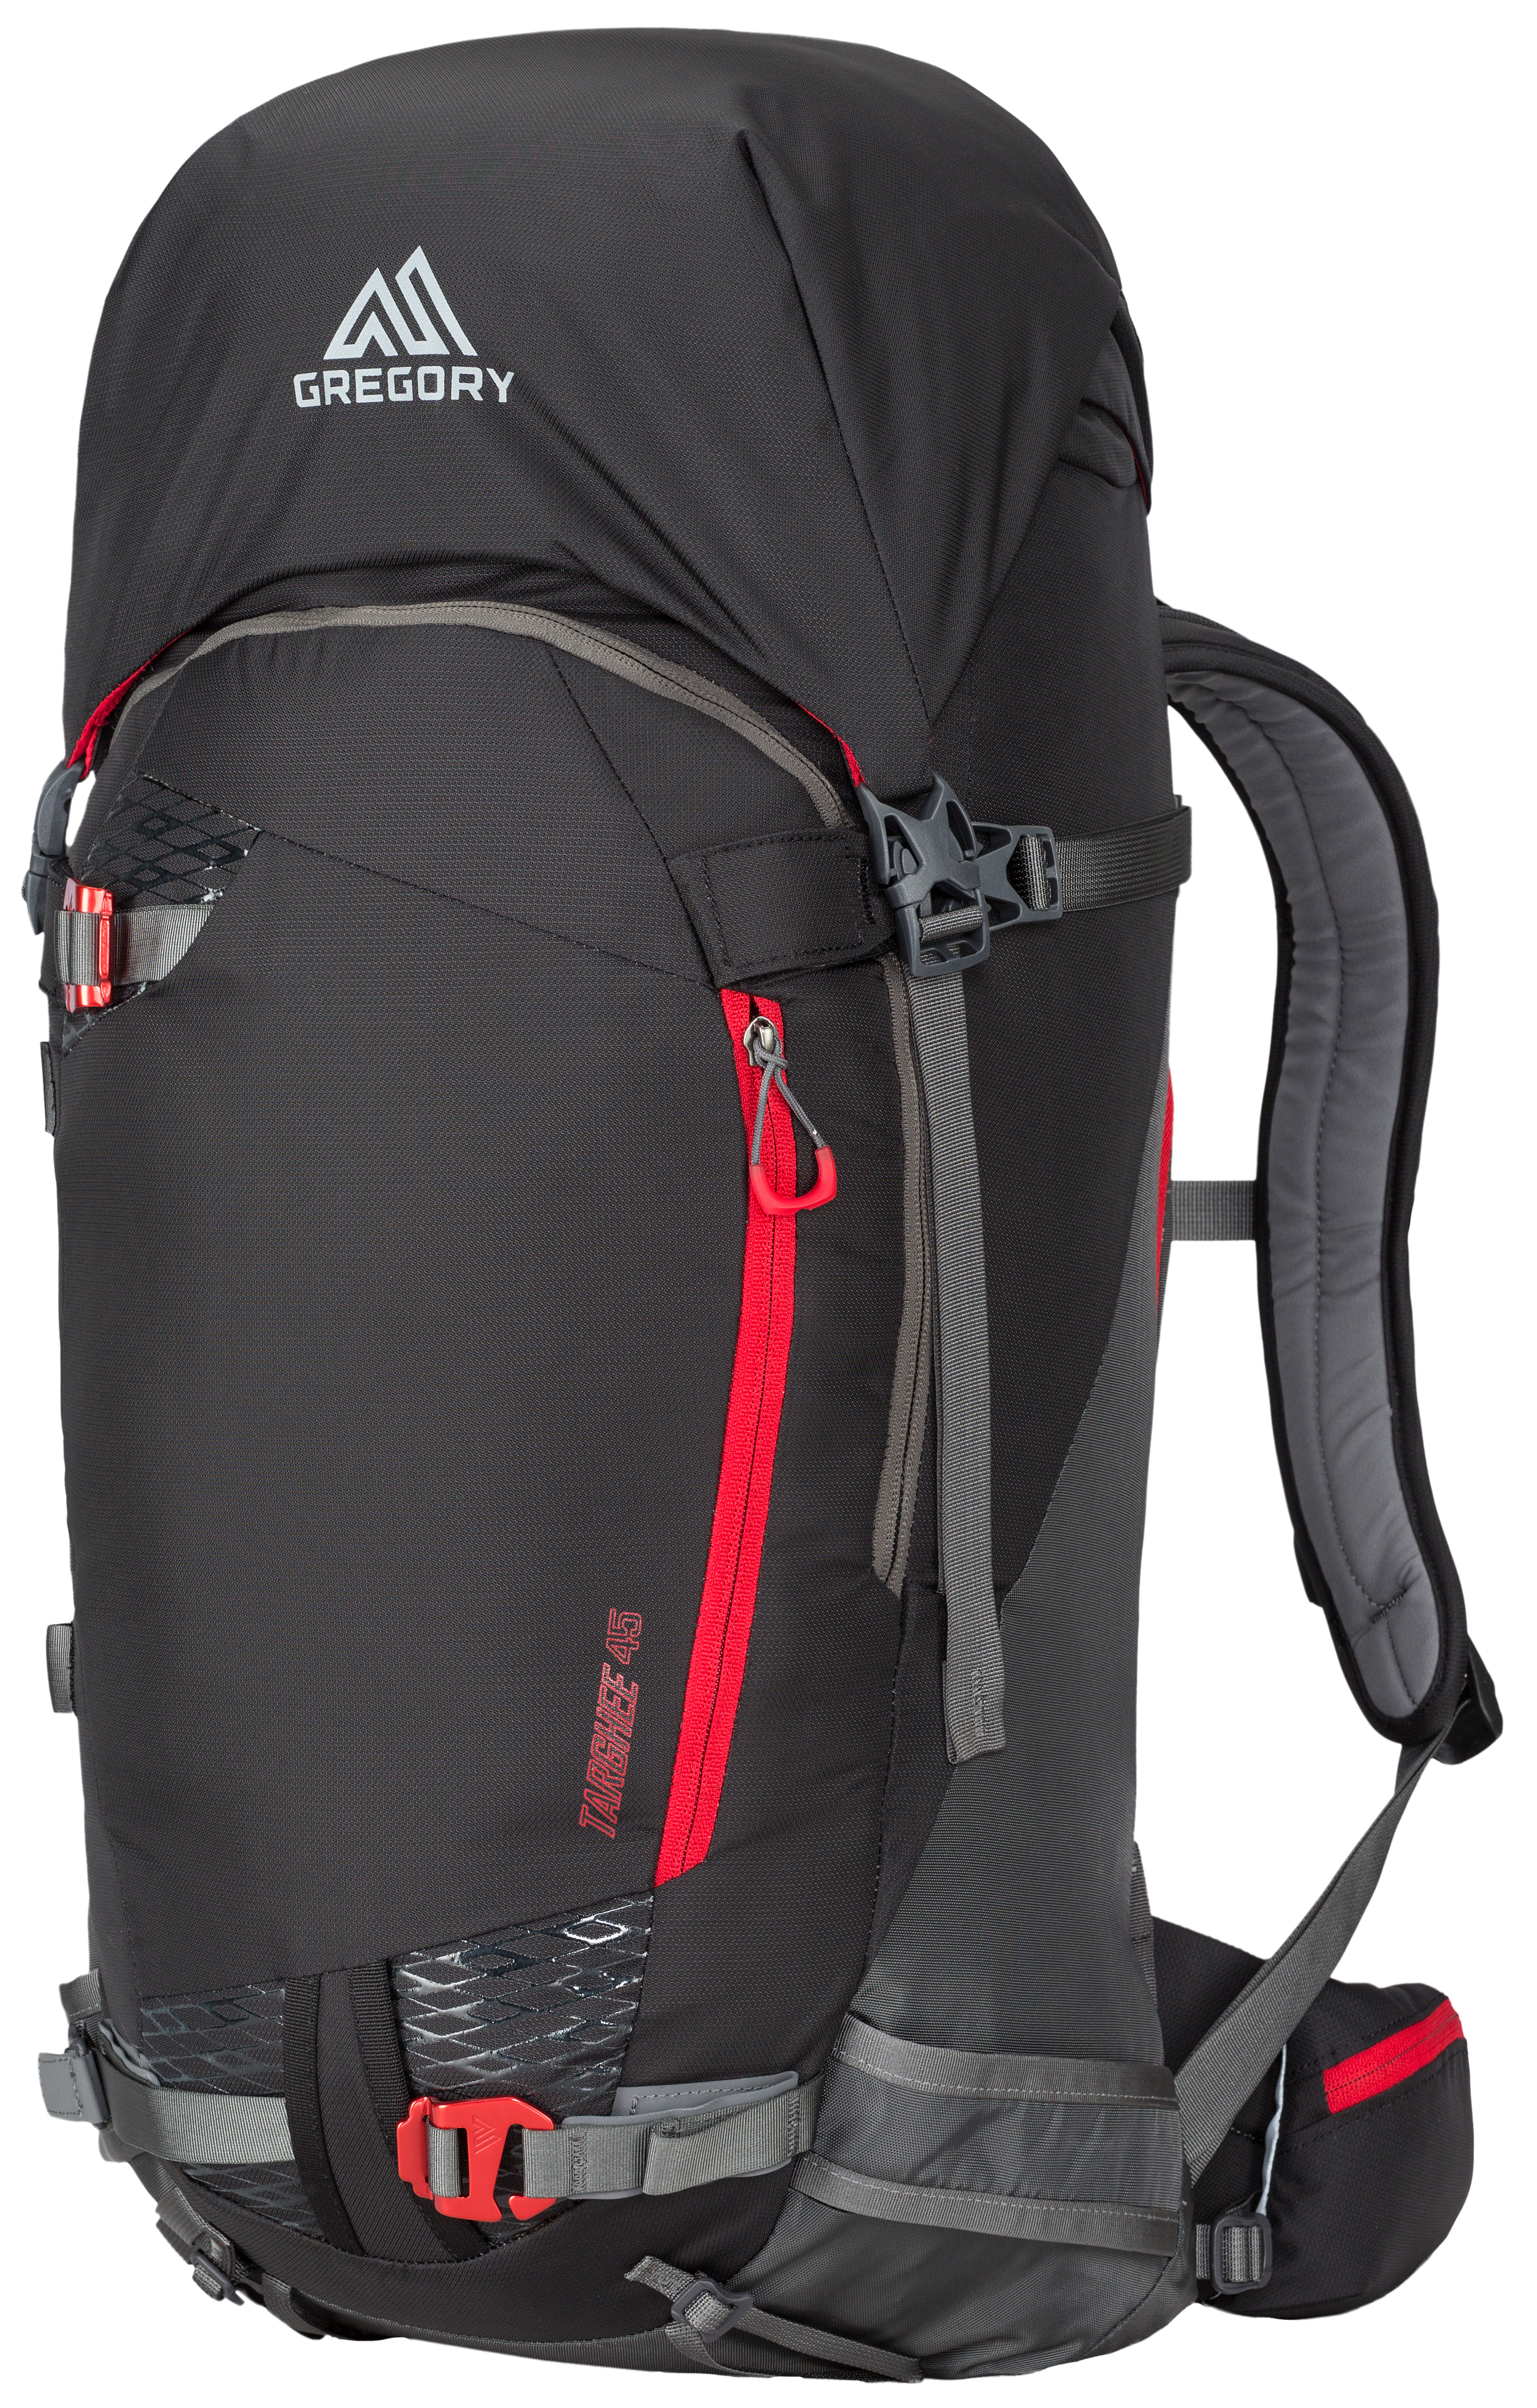 0cb9c829bce Packs and bags